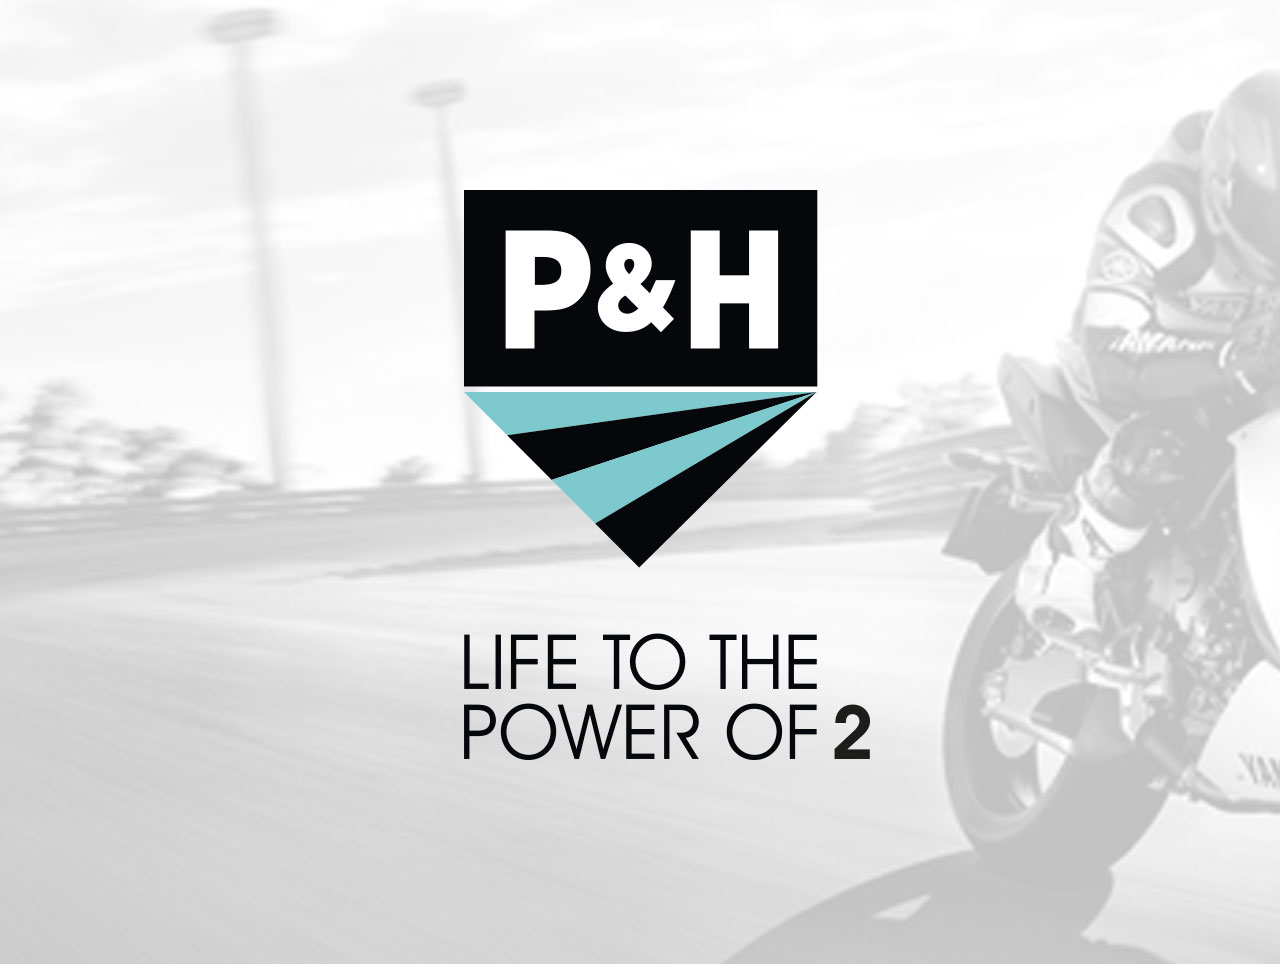 p&h motorcycles logo design